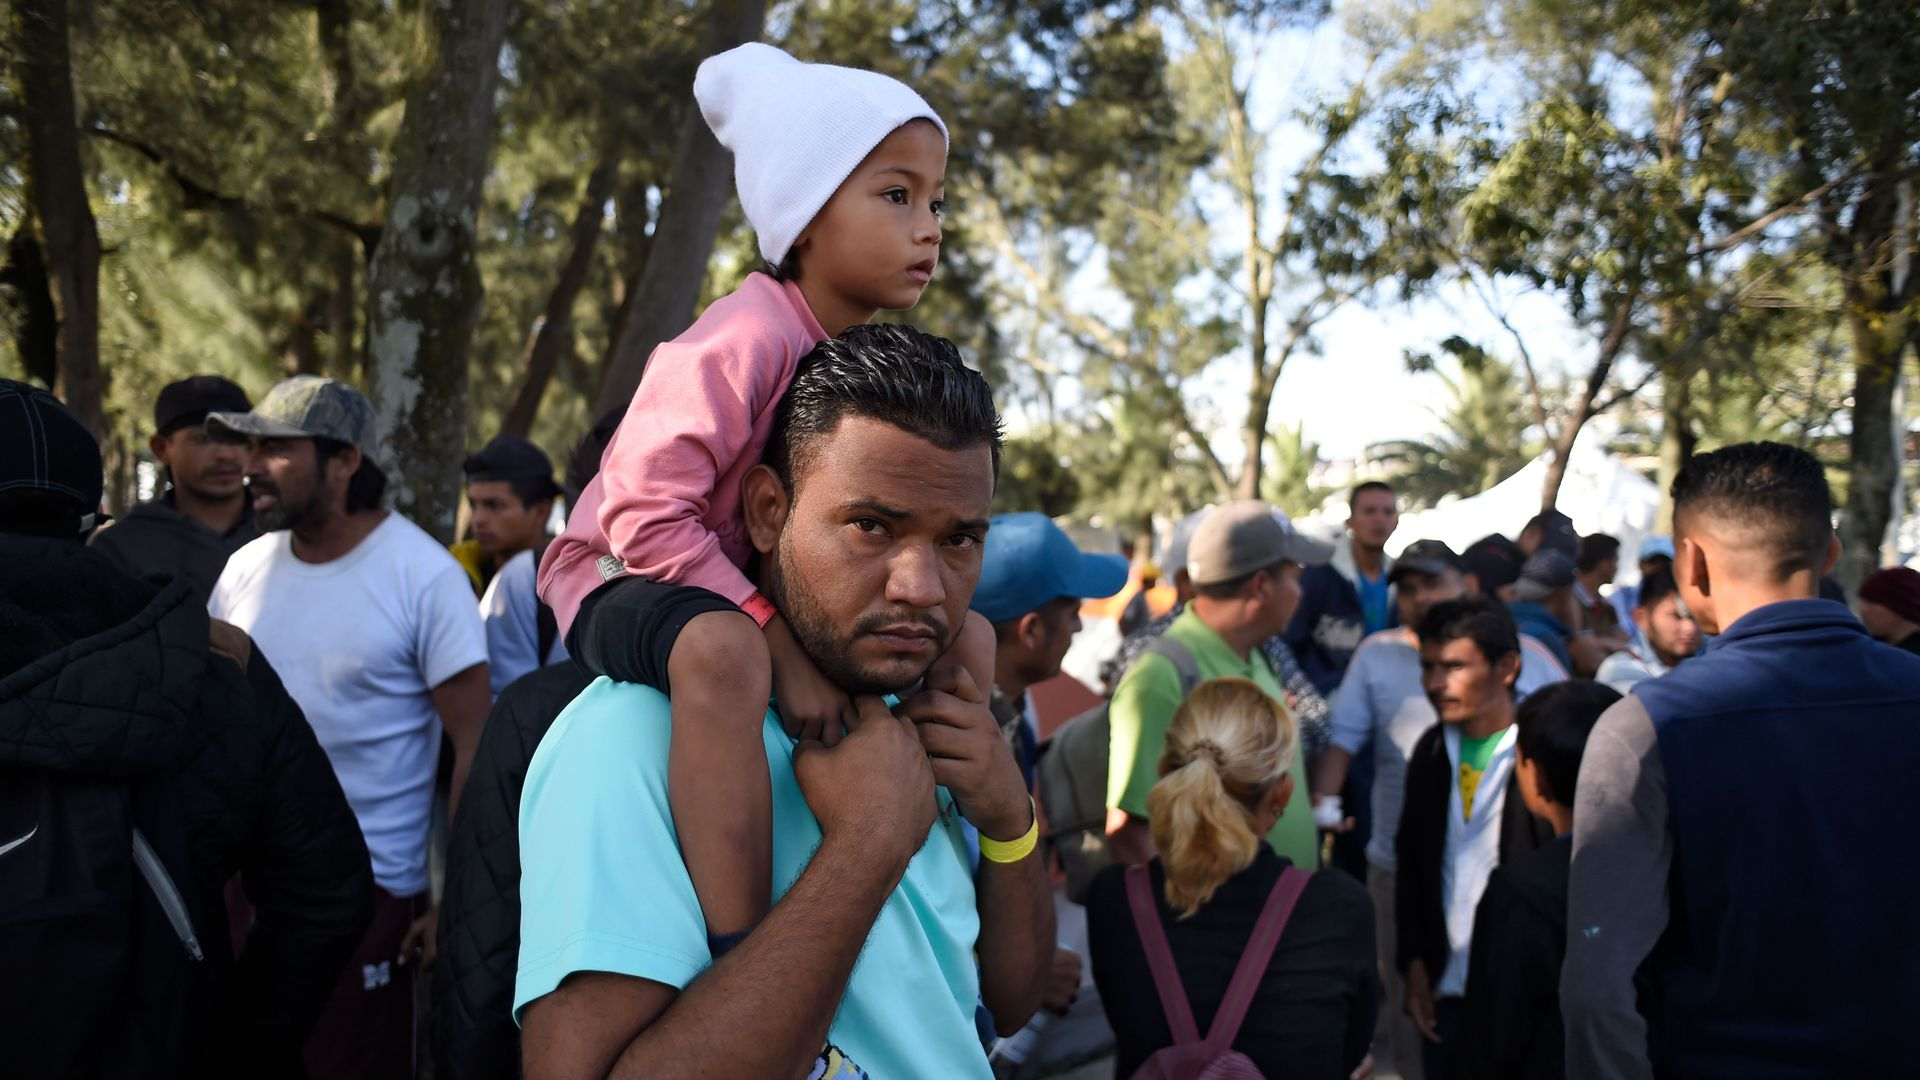 A migrant child sits on her father's shoulder